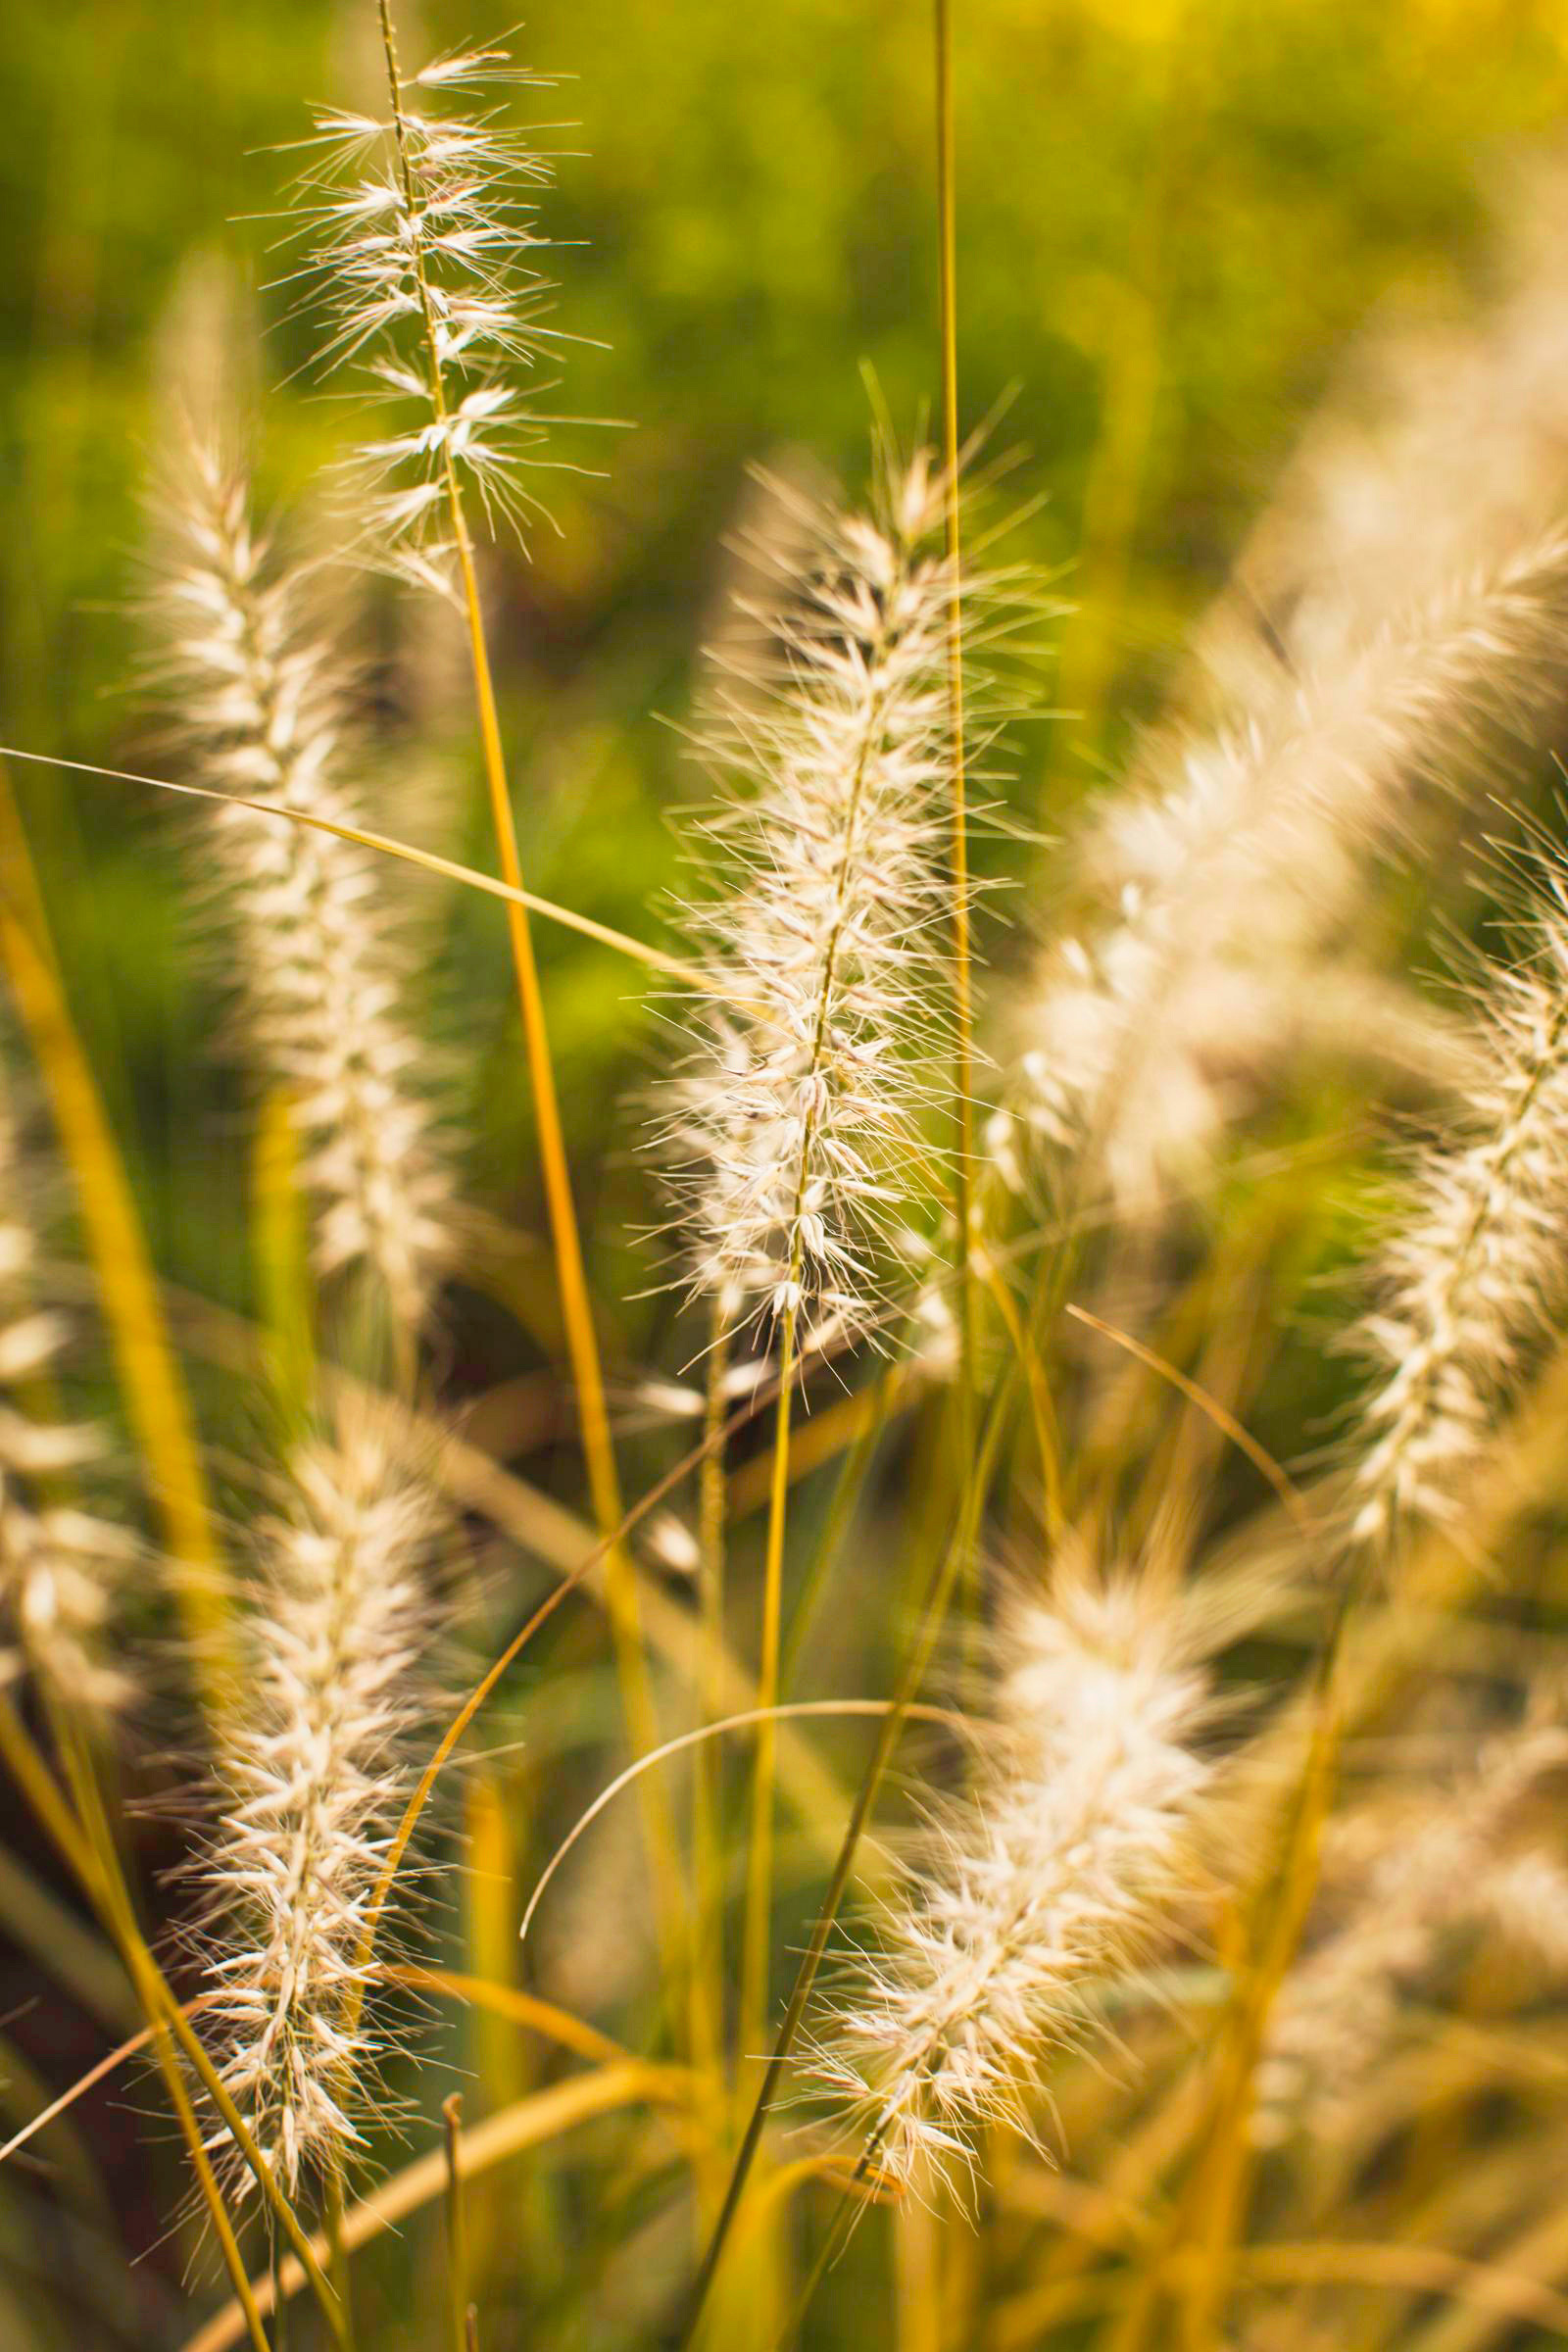 Fall garden ideas: Ornamental grasses